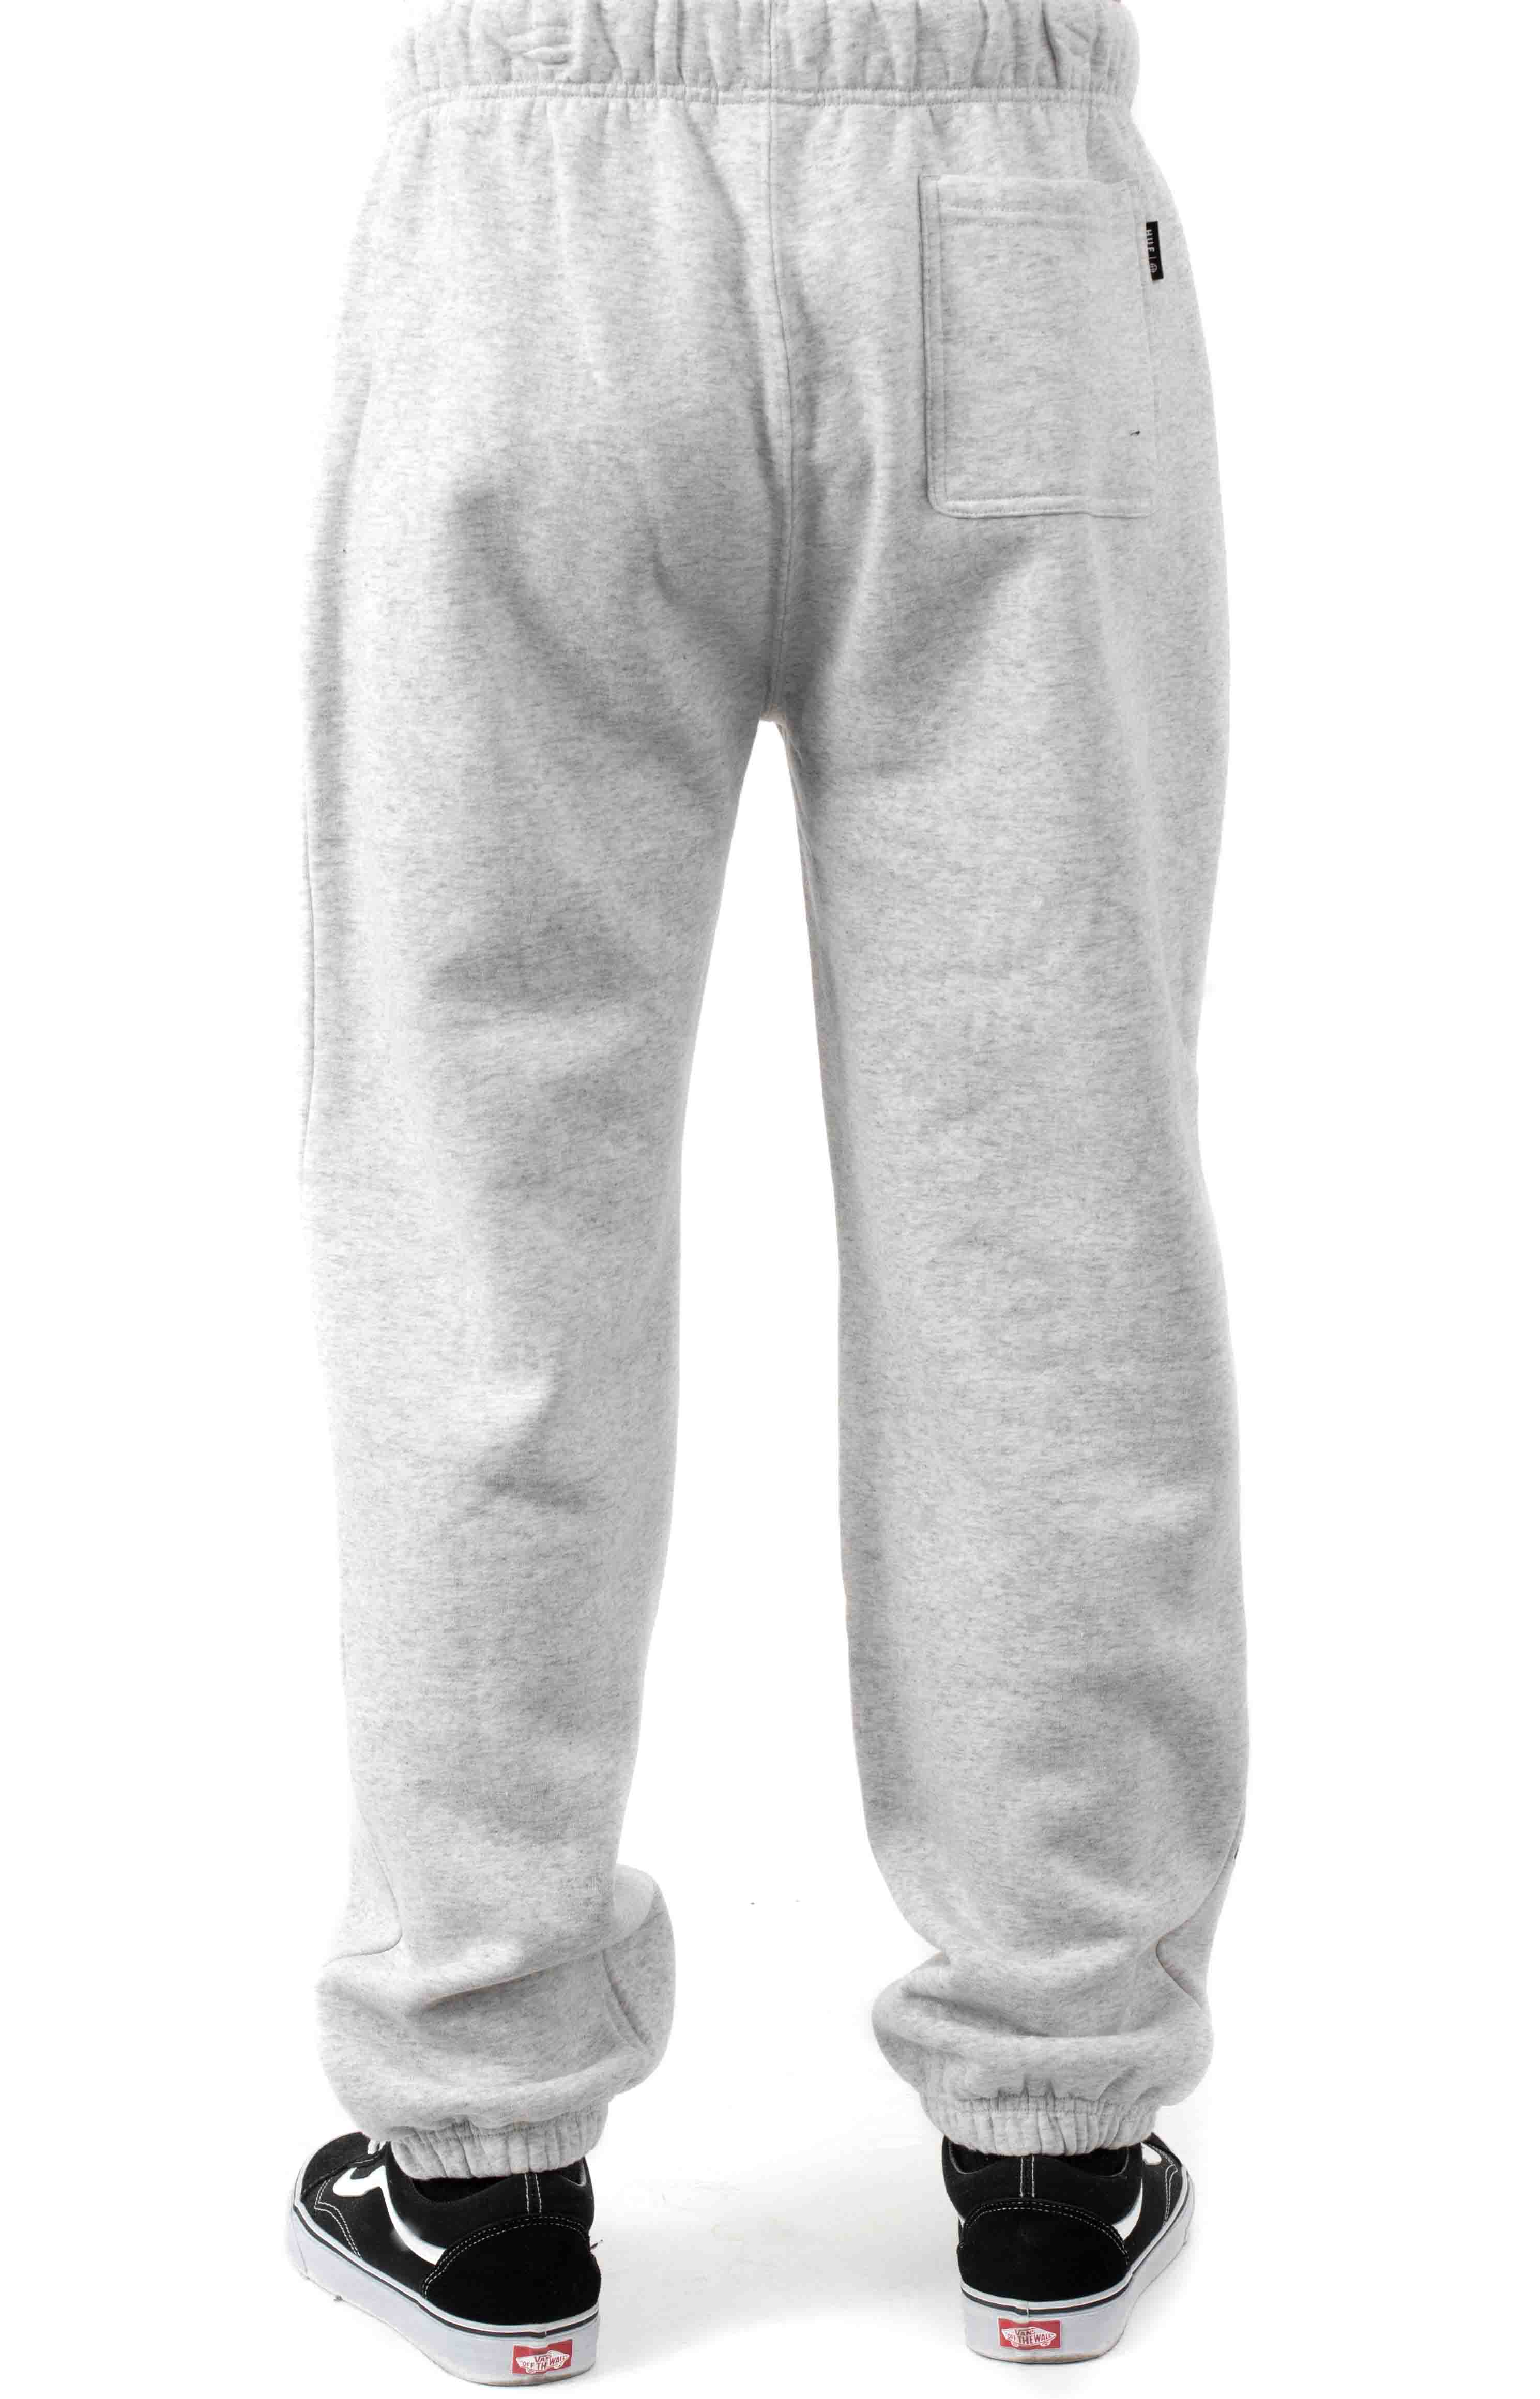 Pushing Daisies TT Fleece Pants - Heather Grey  3